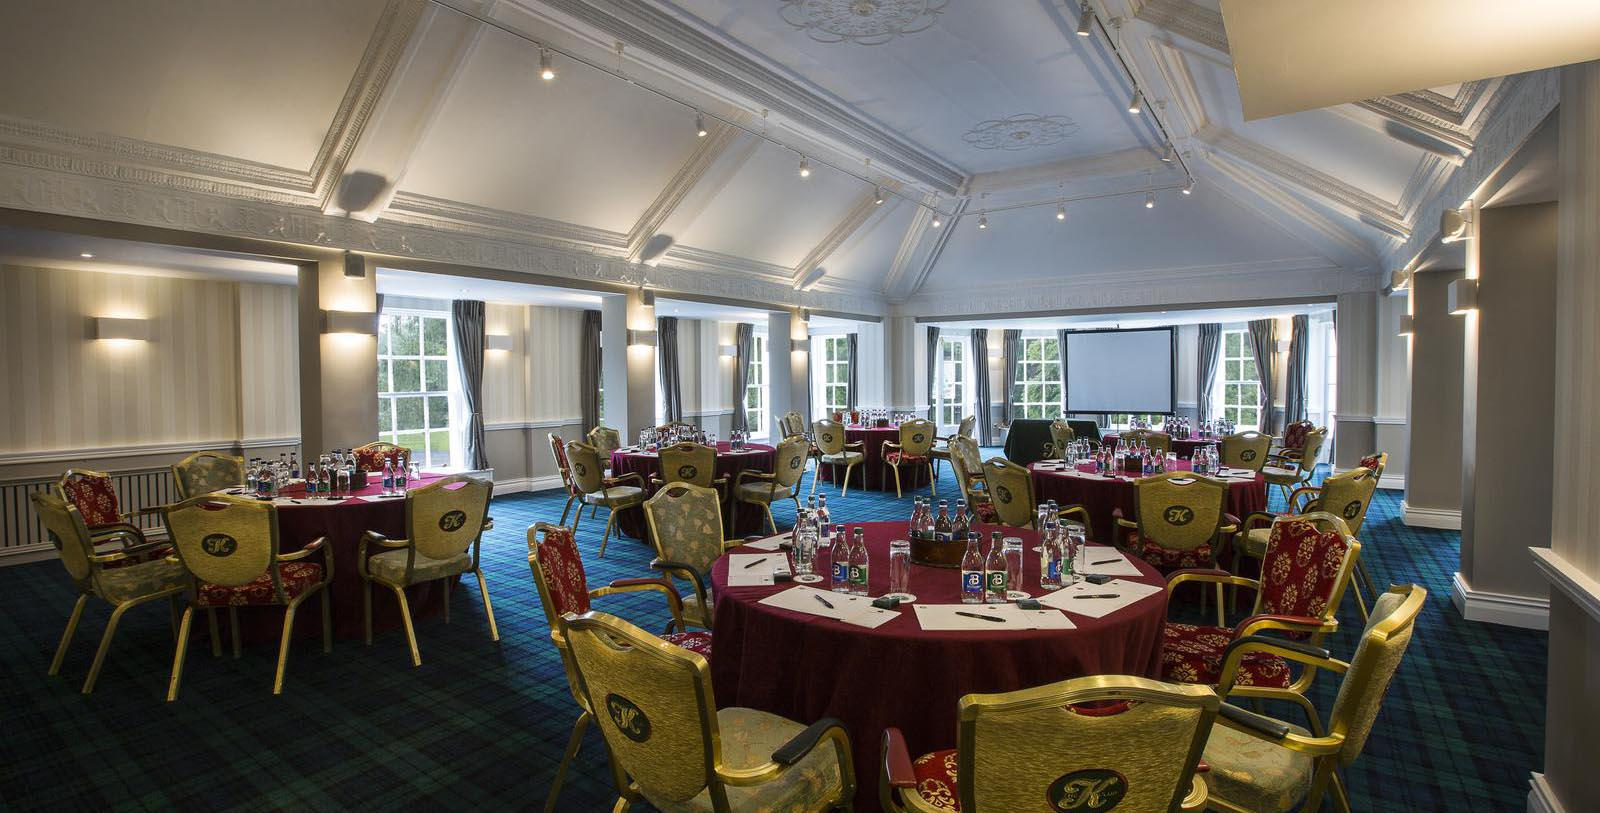 Image of Inis Mór Meeting Room at The K Club, 550, Member of Historic Hotels Worldwide, in Straffan, County Kildare, Ireland, Special Occasions